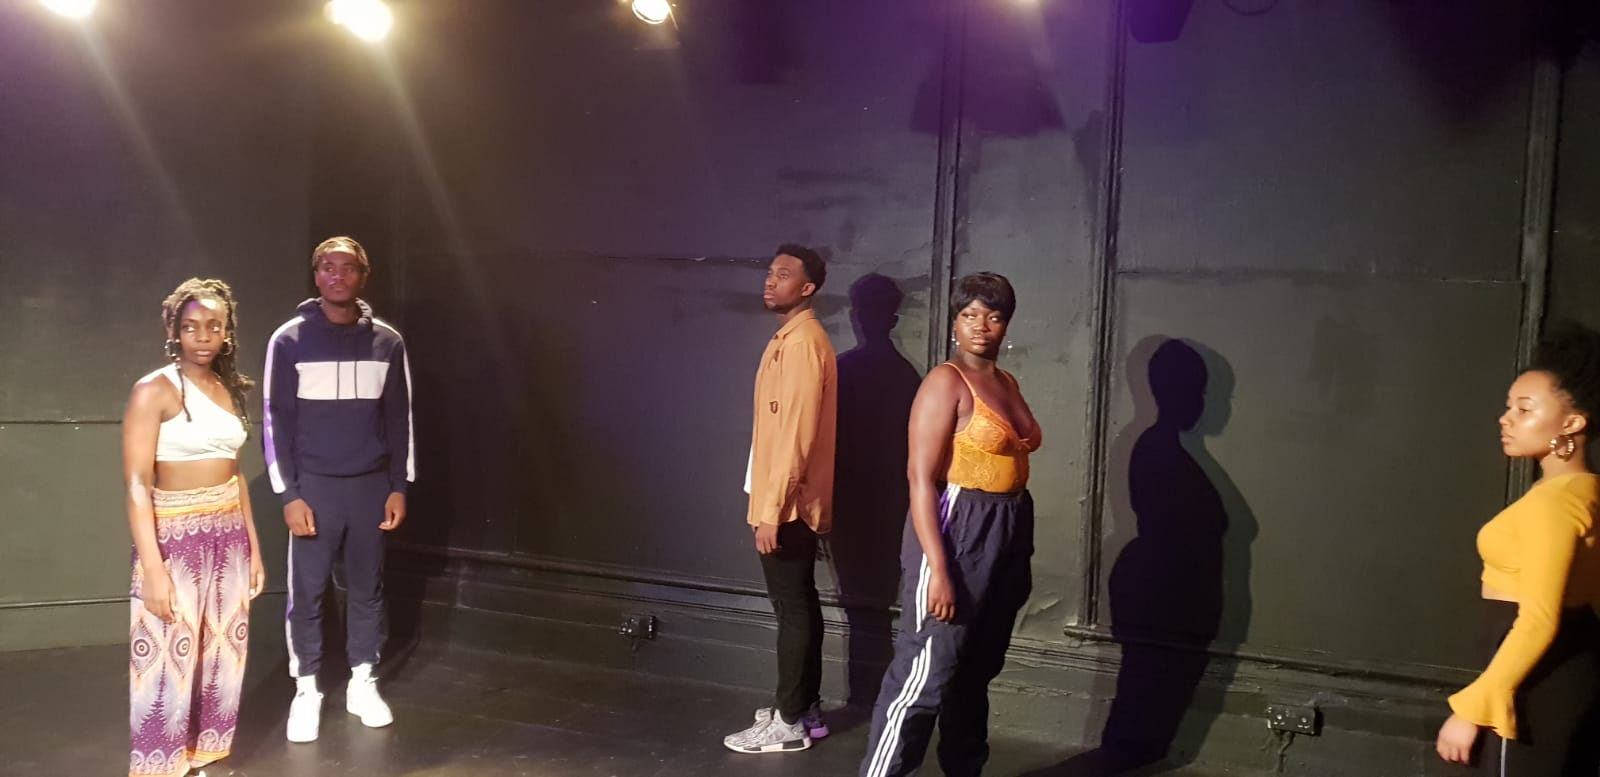 Down There: In the Mind of the Conscious, Camden Fringe Festival - (c) Crawford Kalu - HiddenViewz